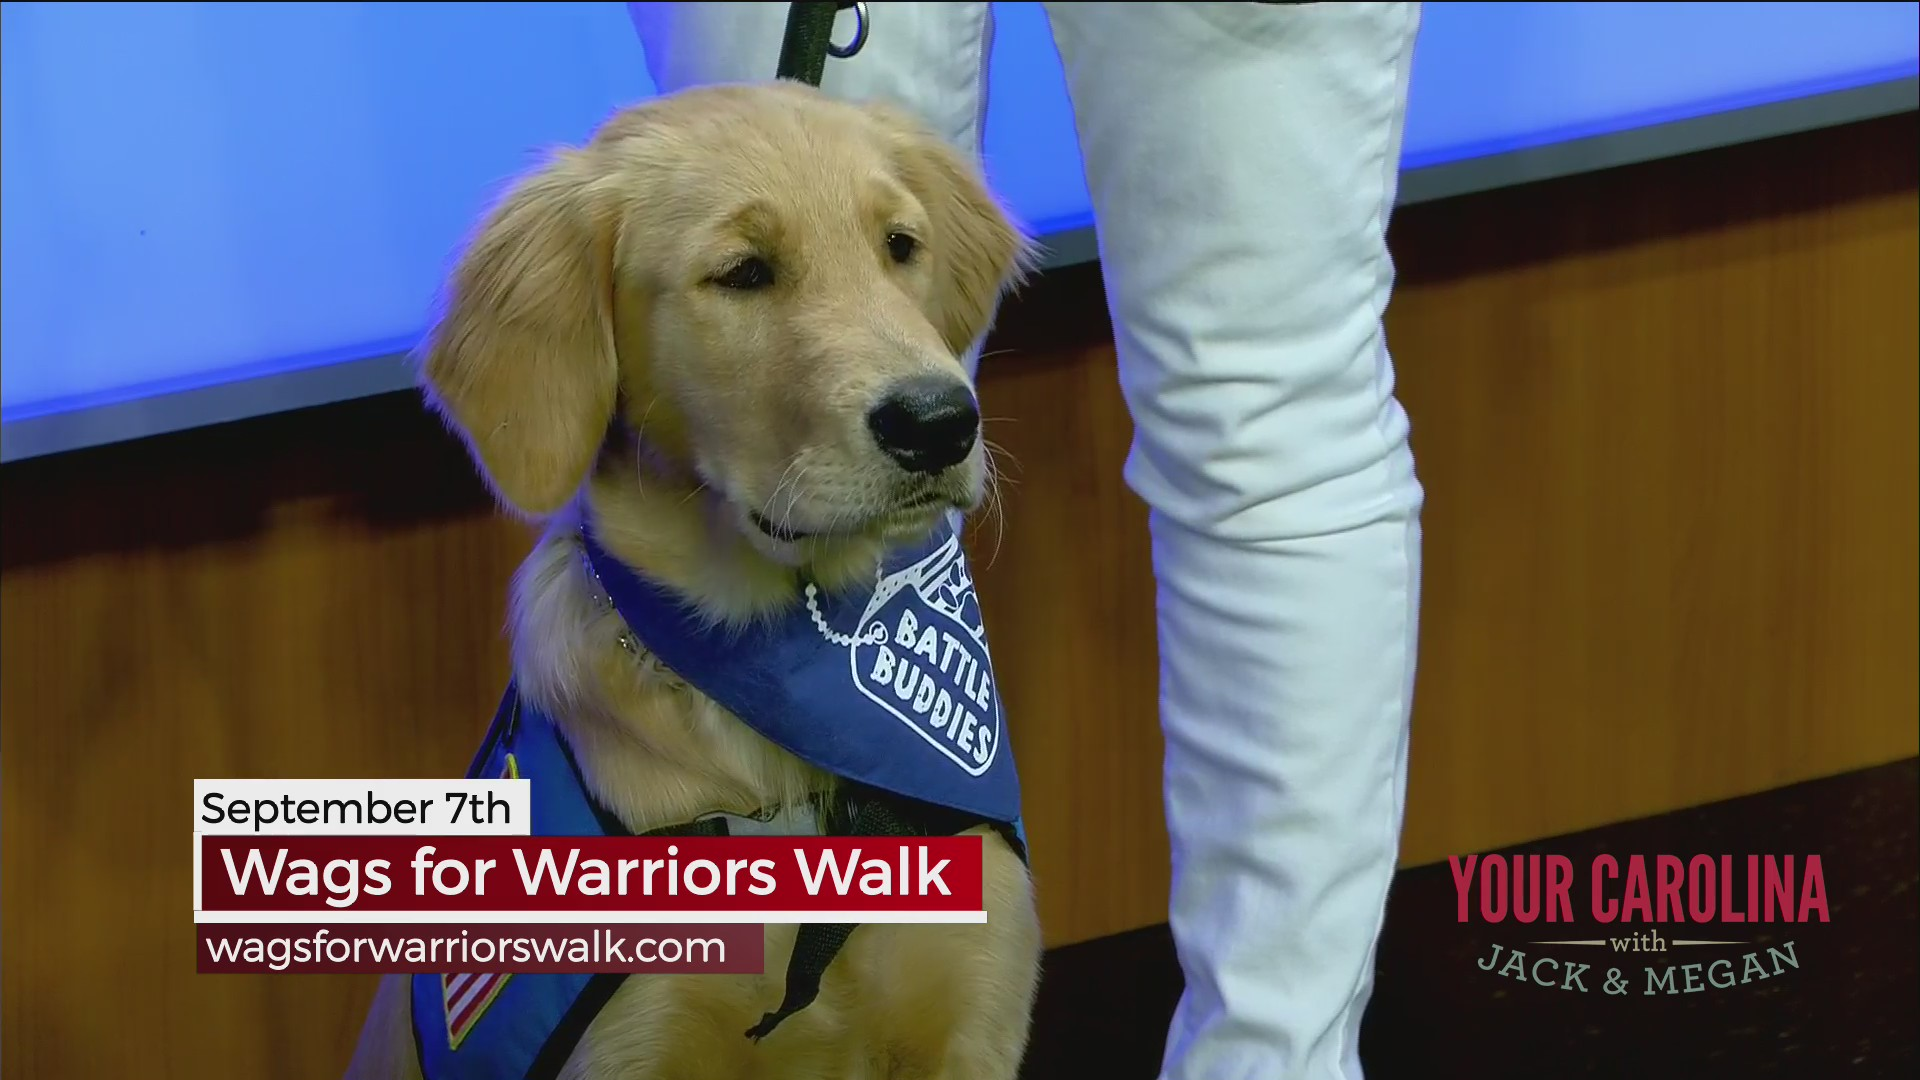 Wags for Warriors Walk